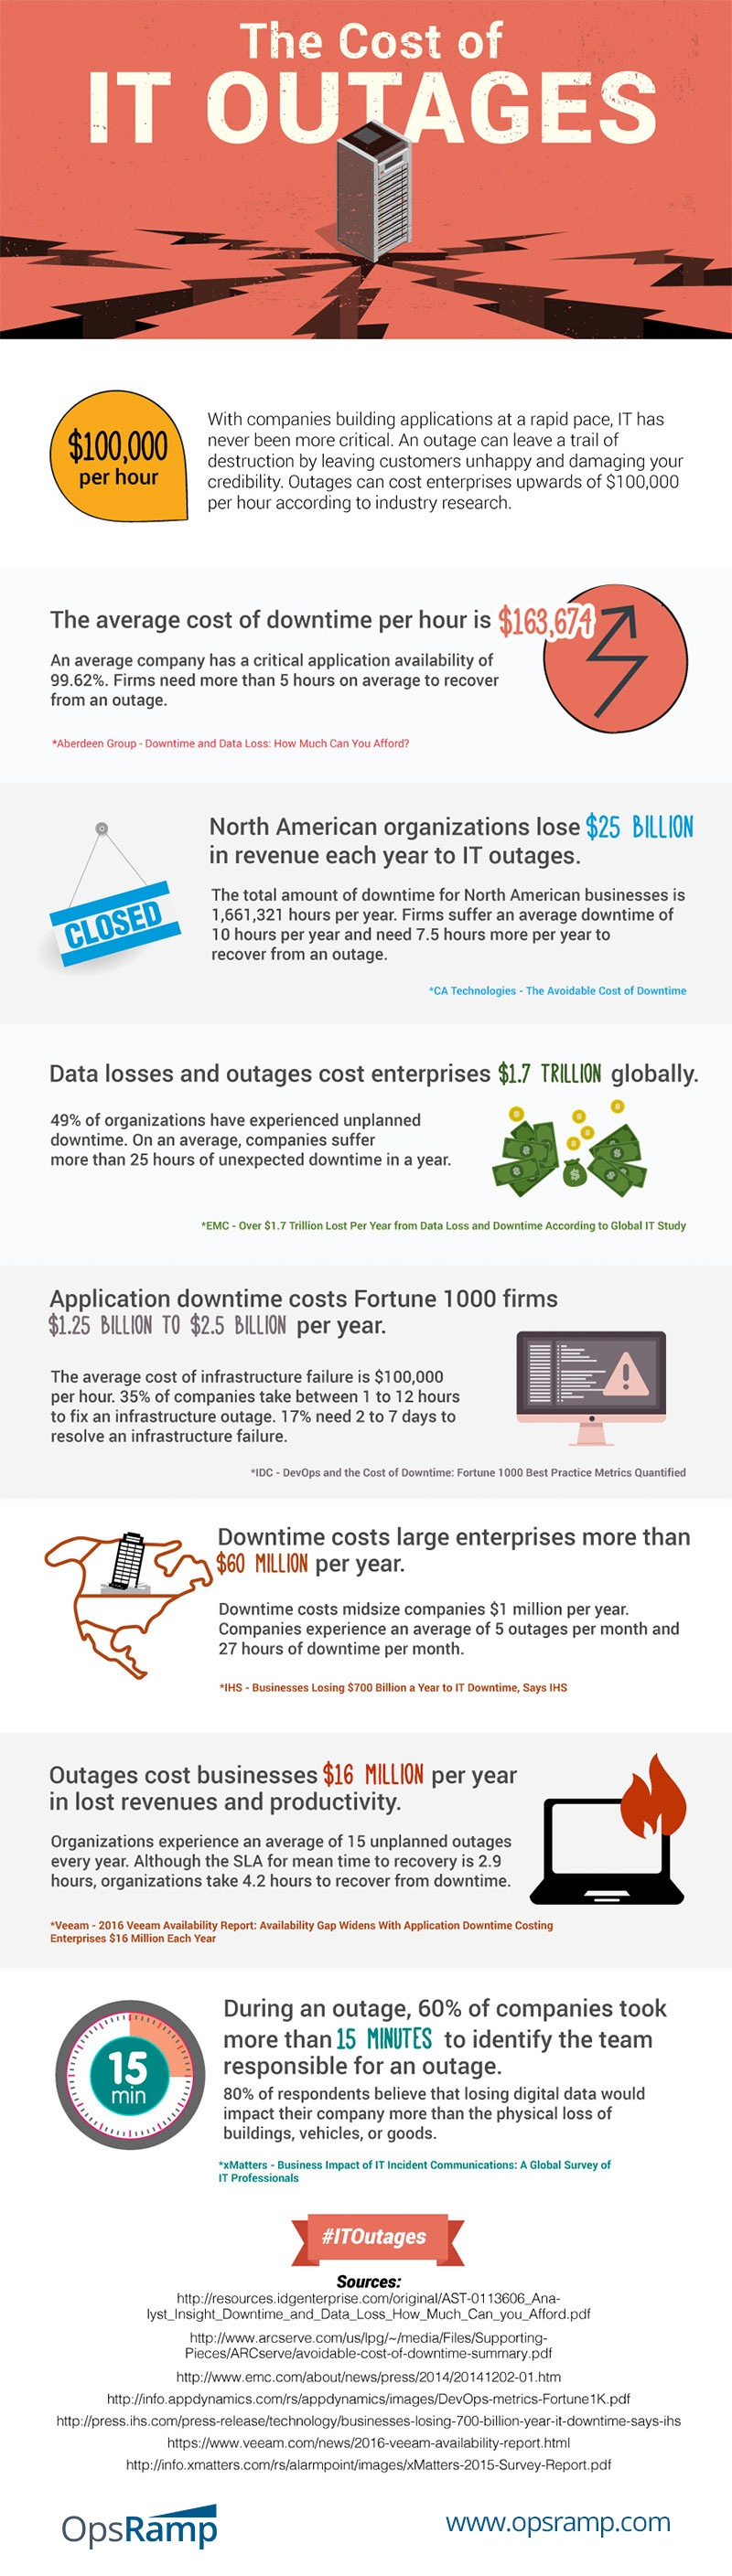 The Cost of IT Outages